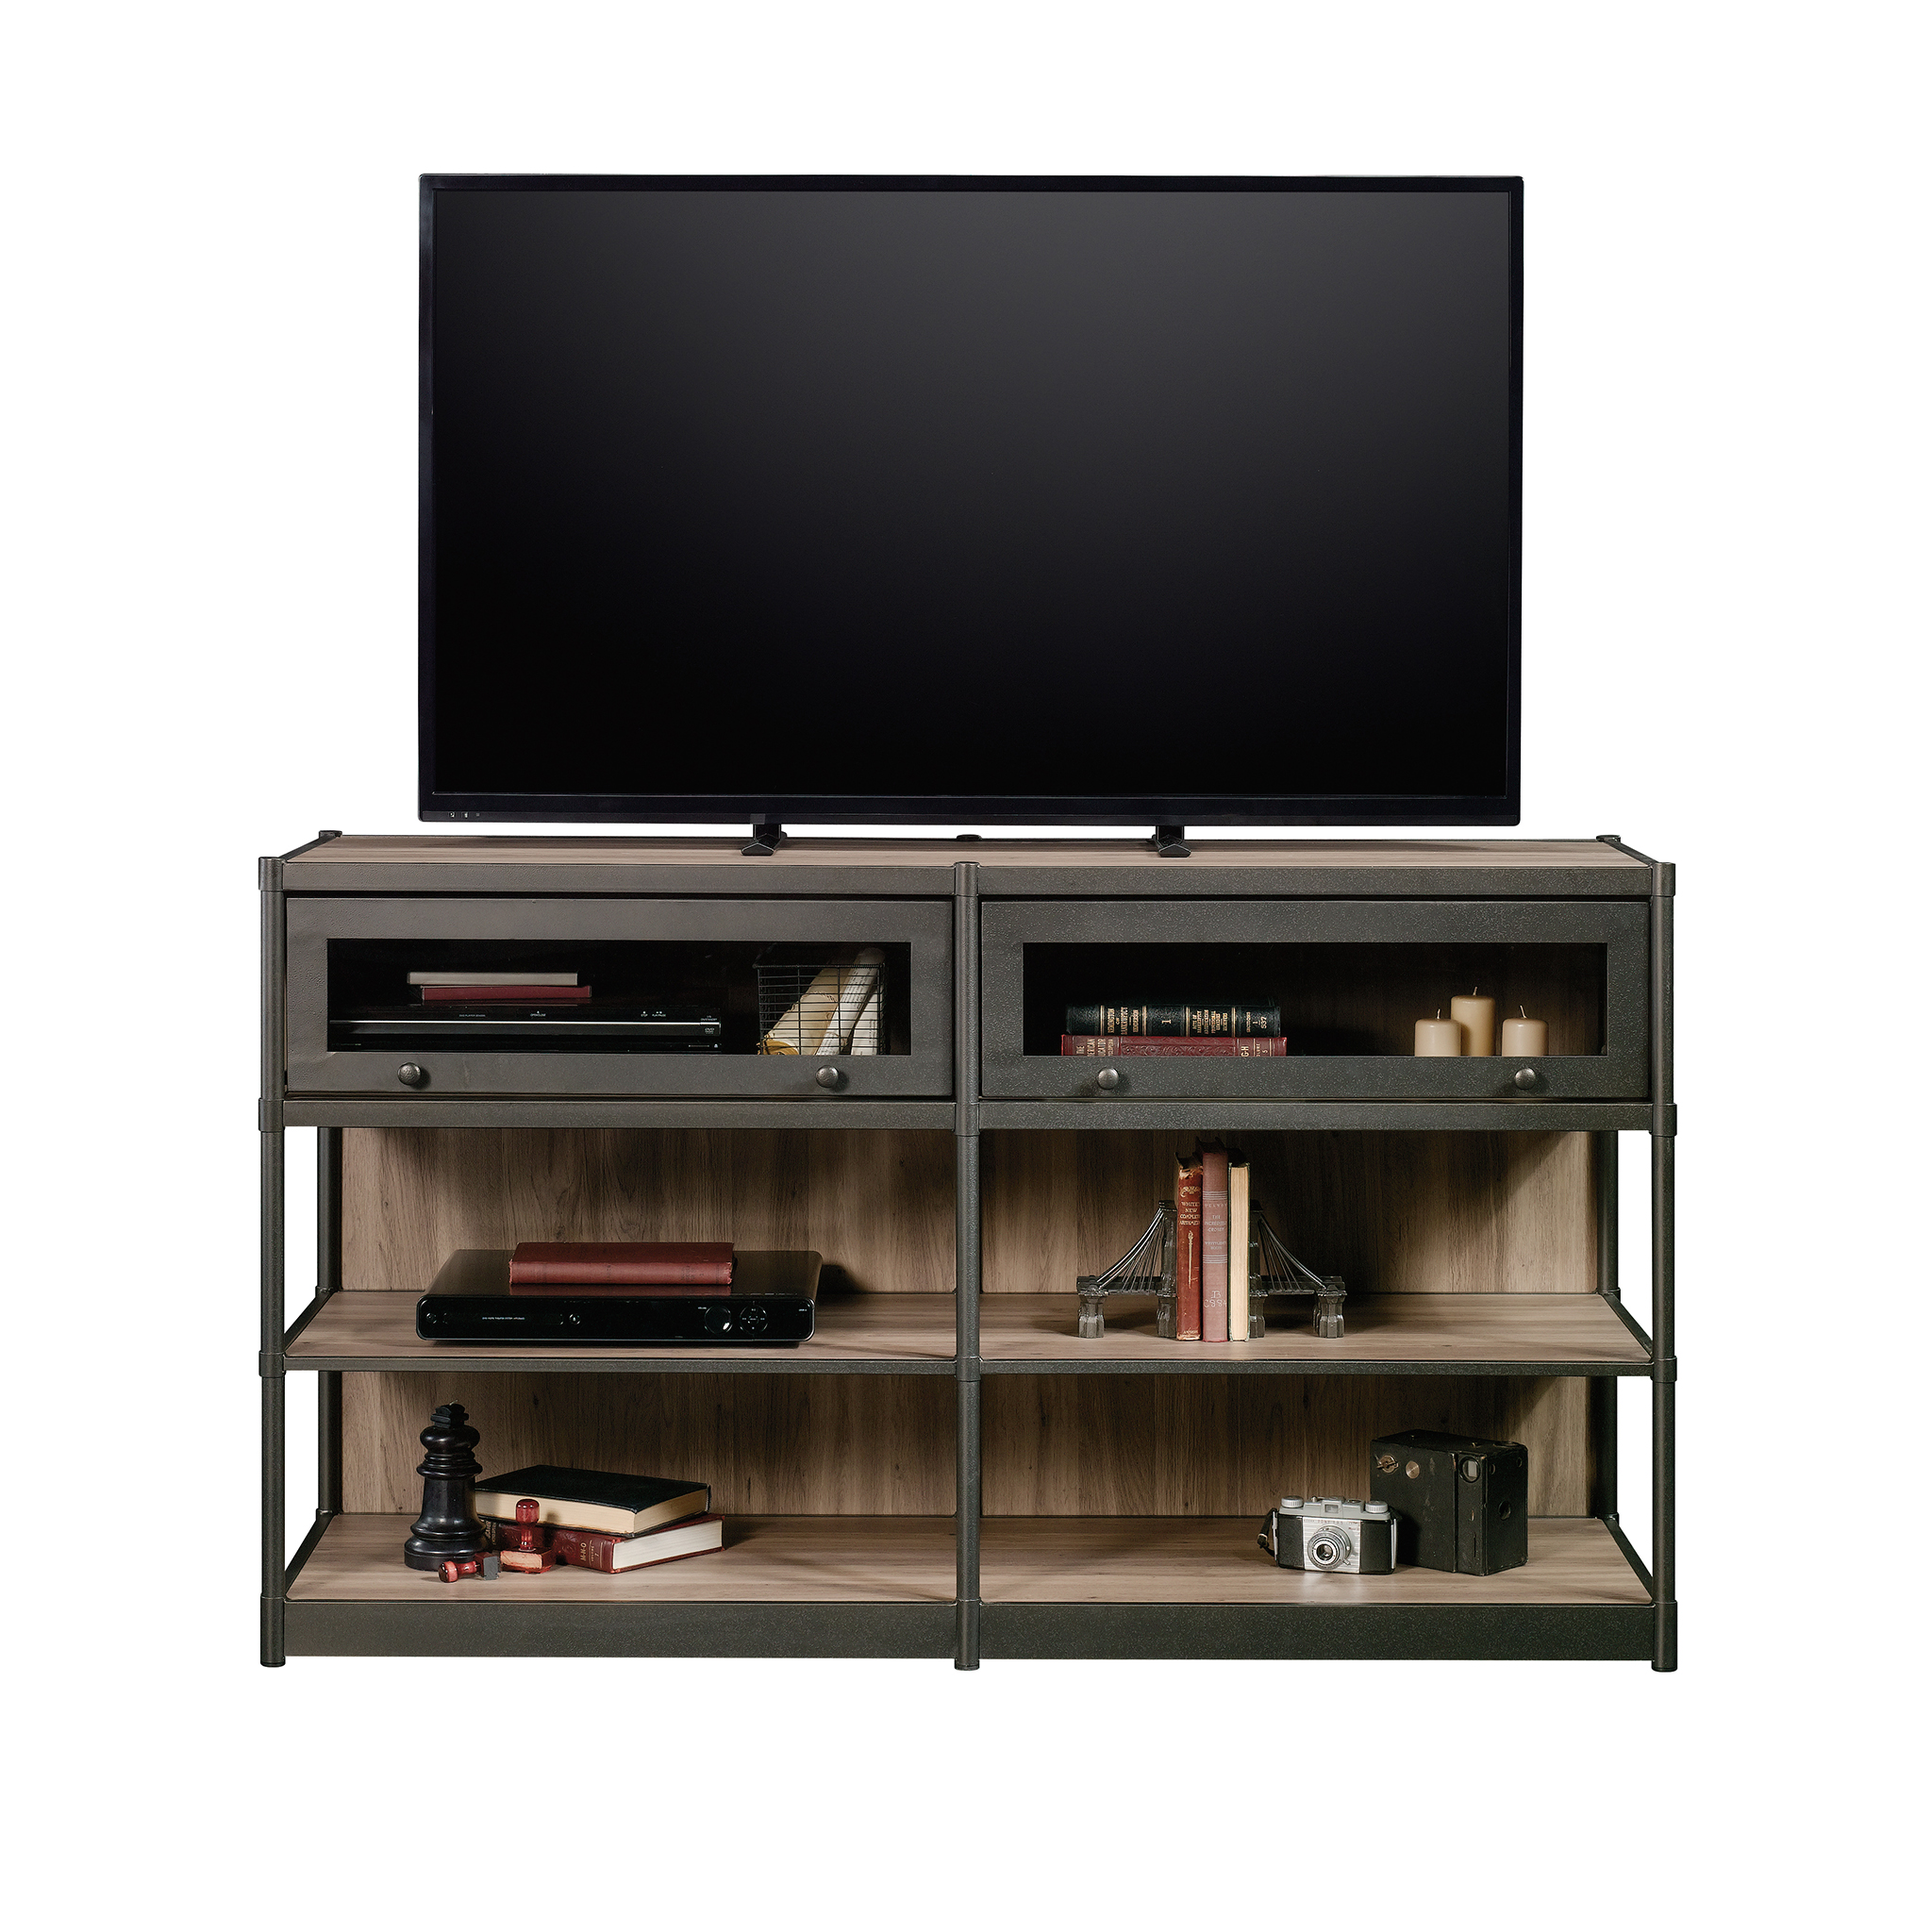 "Better Homes & Gardens Bailey Inn Credenza TV Stand for TVs up to 60"", Washed Oak Finish"